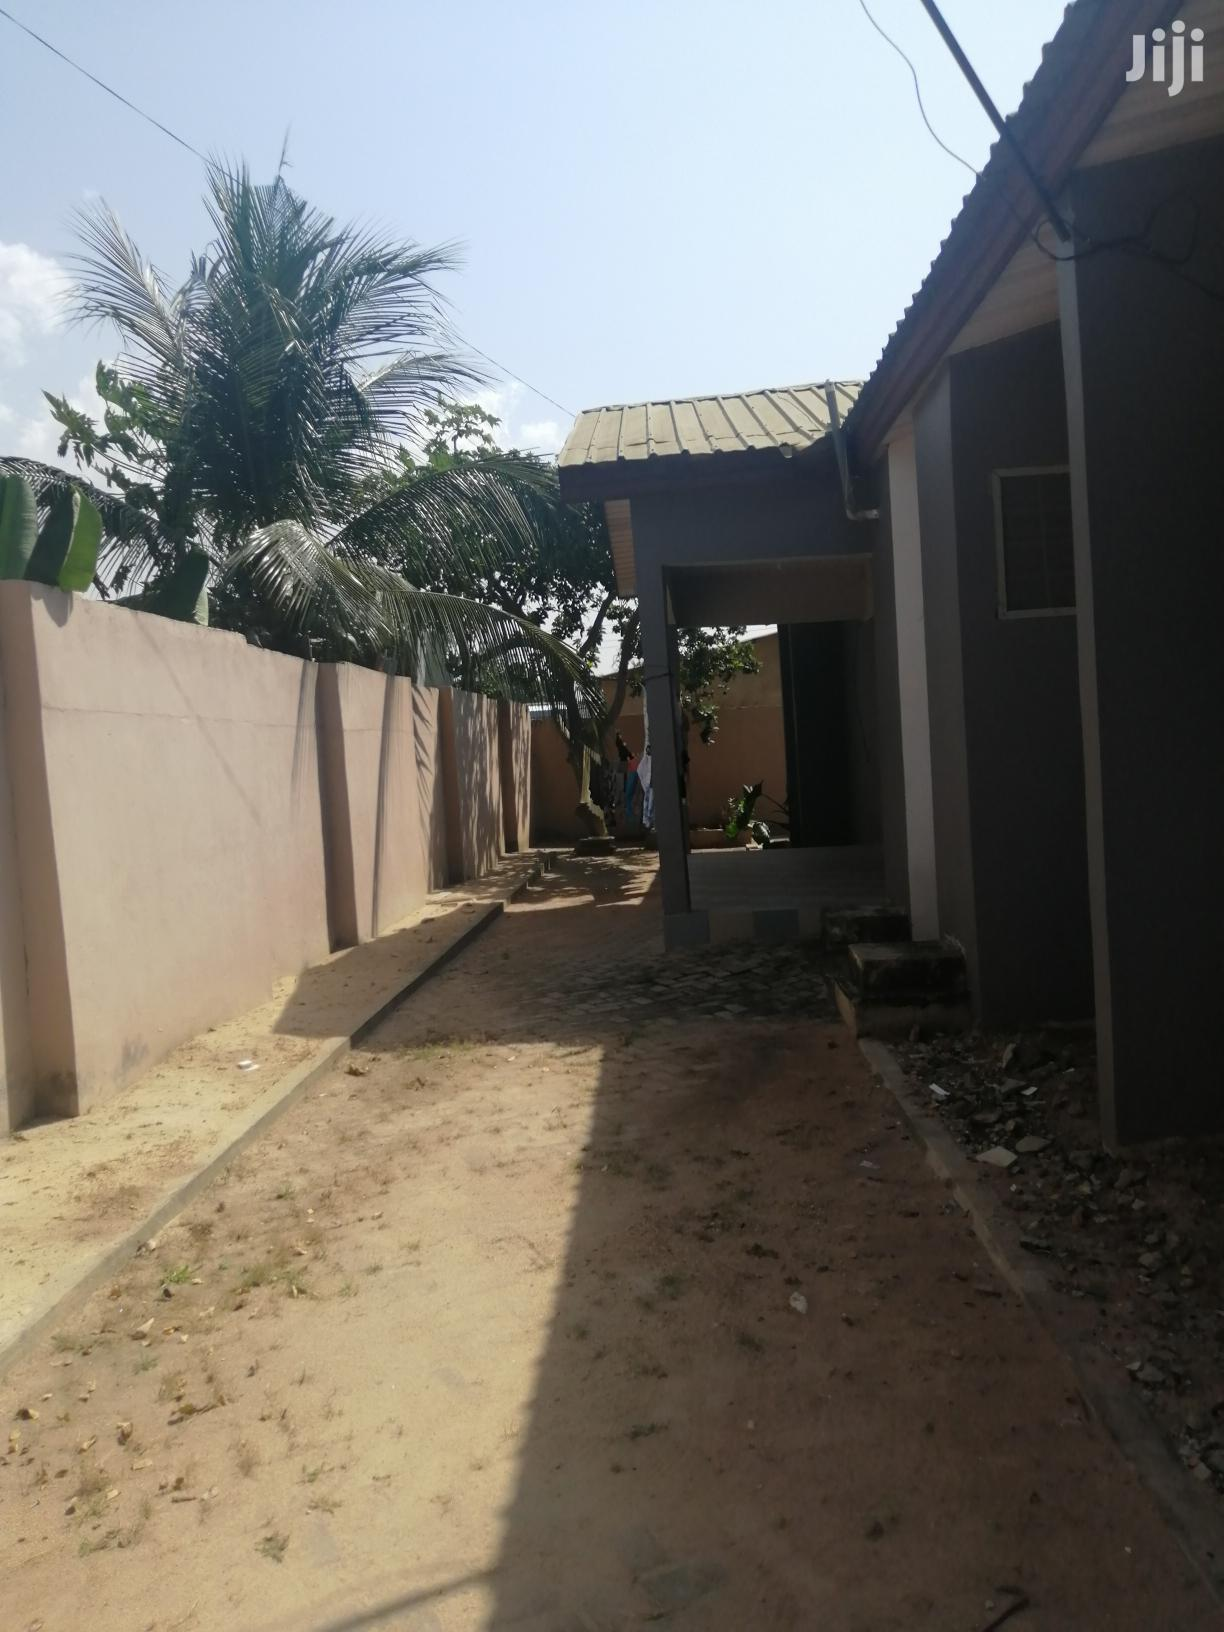 4 Bedrooms House For Sale At Capital Hills New Achimota | Houses & Apartments For Sale for sale in Achimota, Greater Accra, Ghana